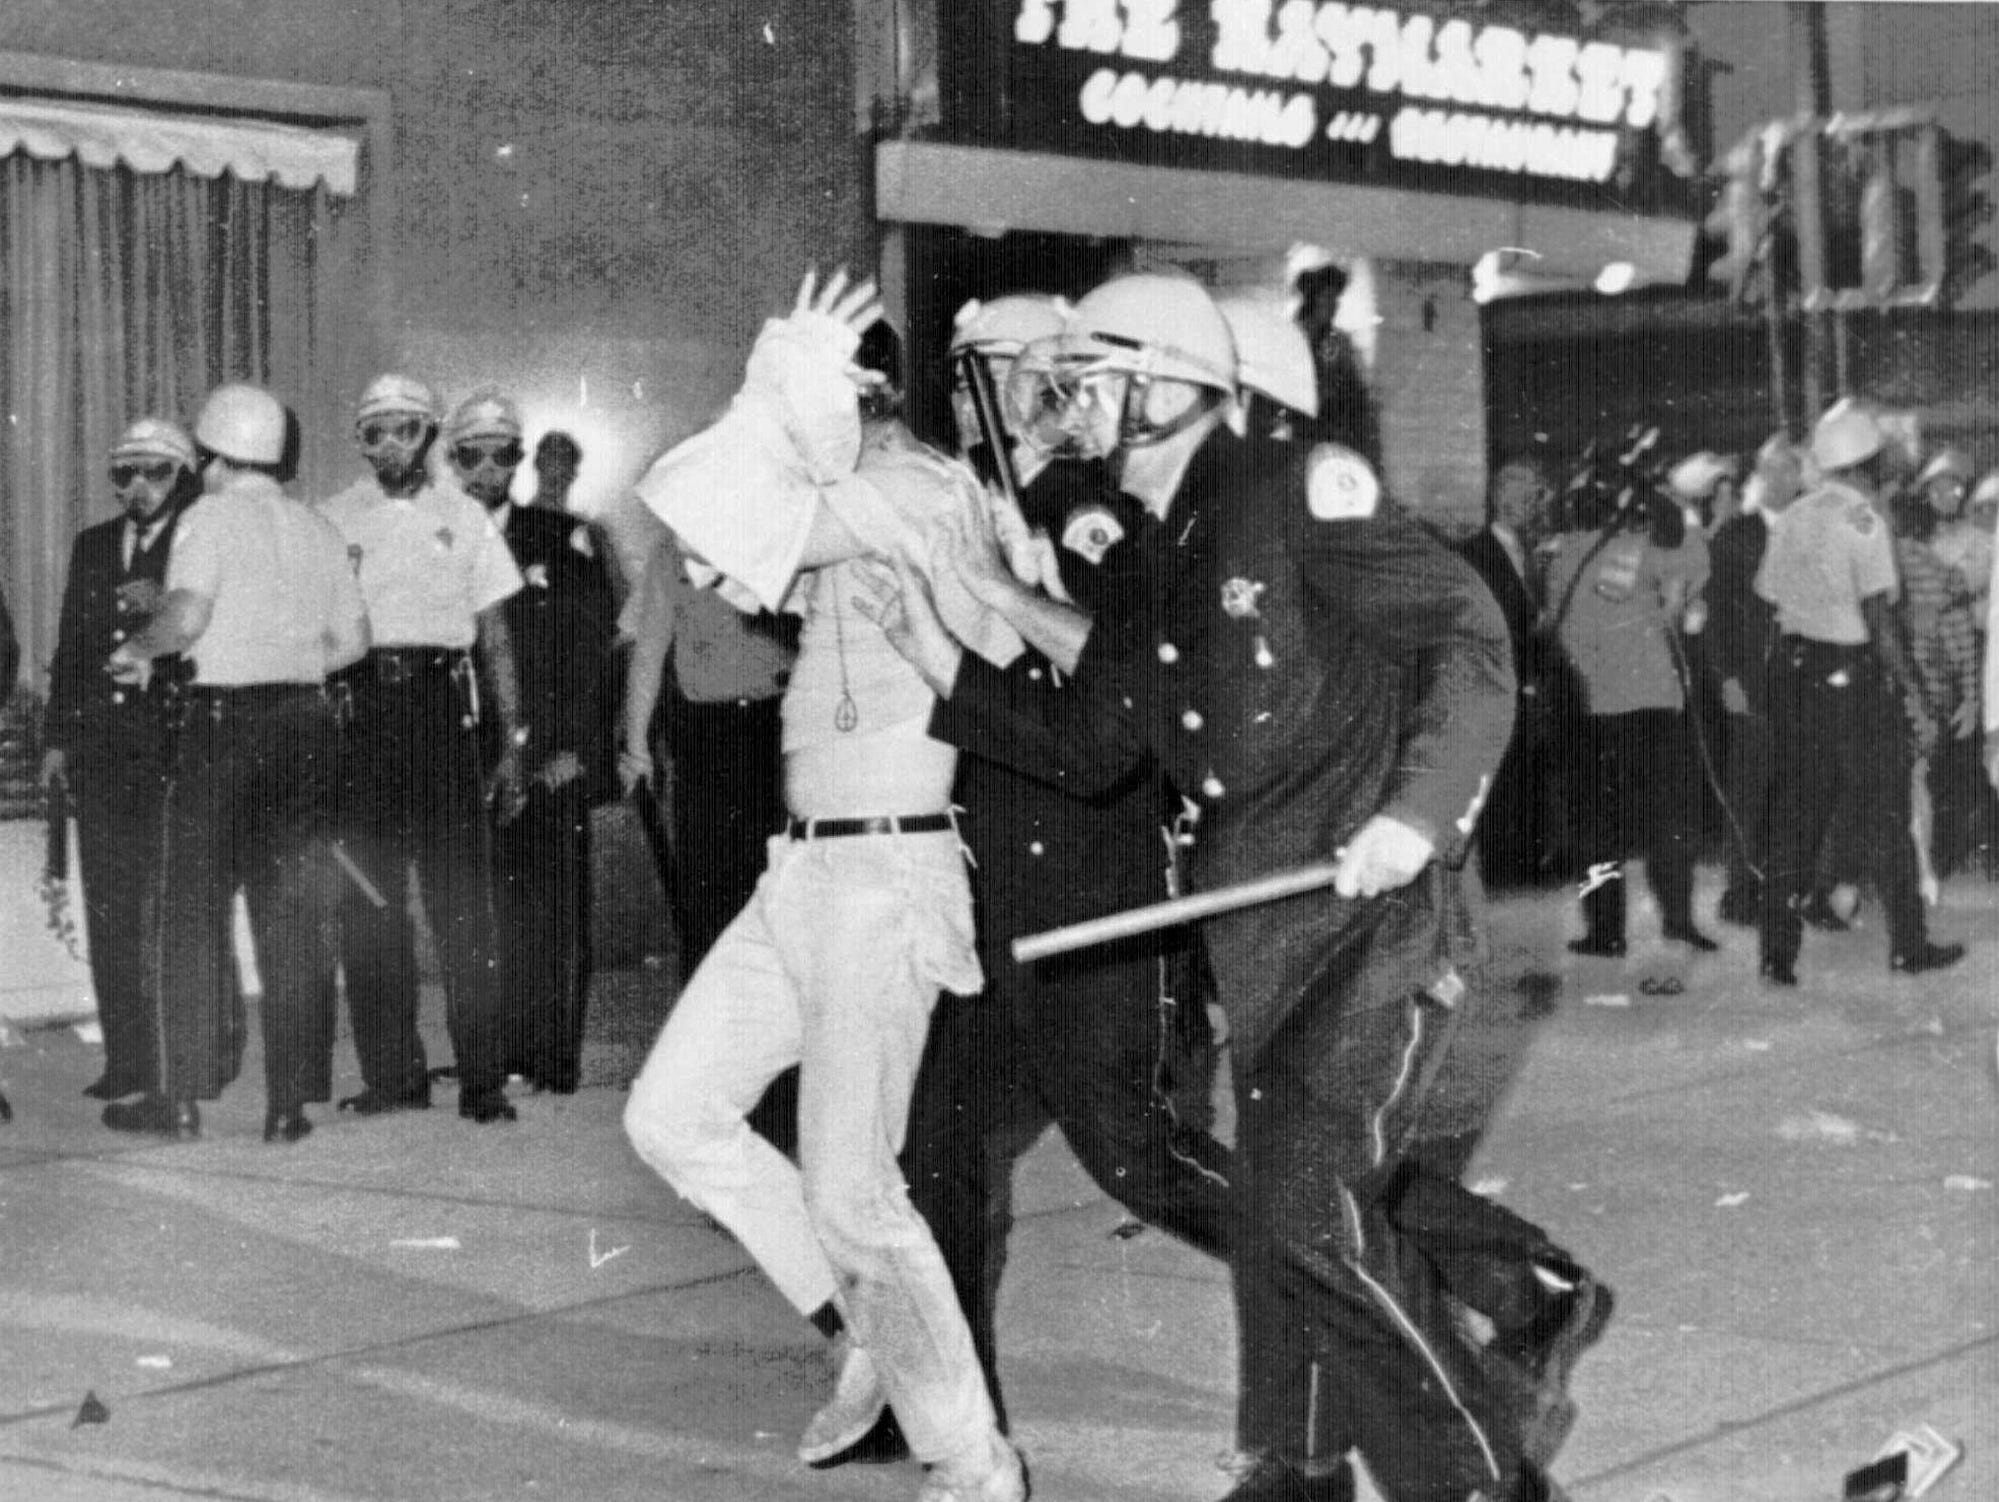 A demonstrator with his hands on his head is led by Chicago police down Michigan Avenue on Aug. 28, 1968, during a confrontation with police and National Guardsmen who battled demonstrators near the Conrad Hilton Hotel, headquarters for the Democratic National Convention. During the convention, hundreds of demonstrators waged war with police and National Guardsmen on the streets of Chicago.